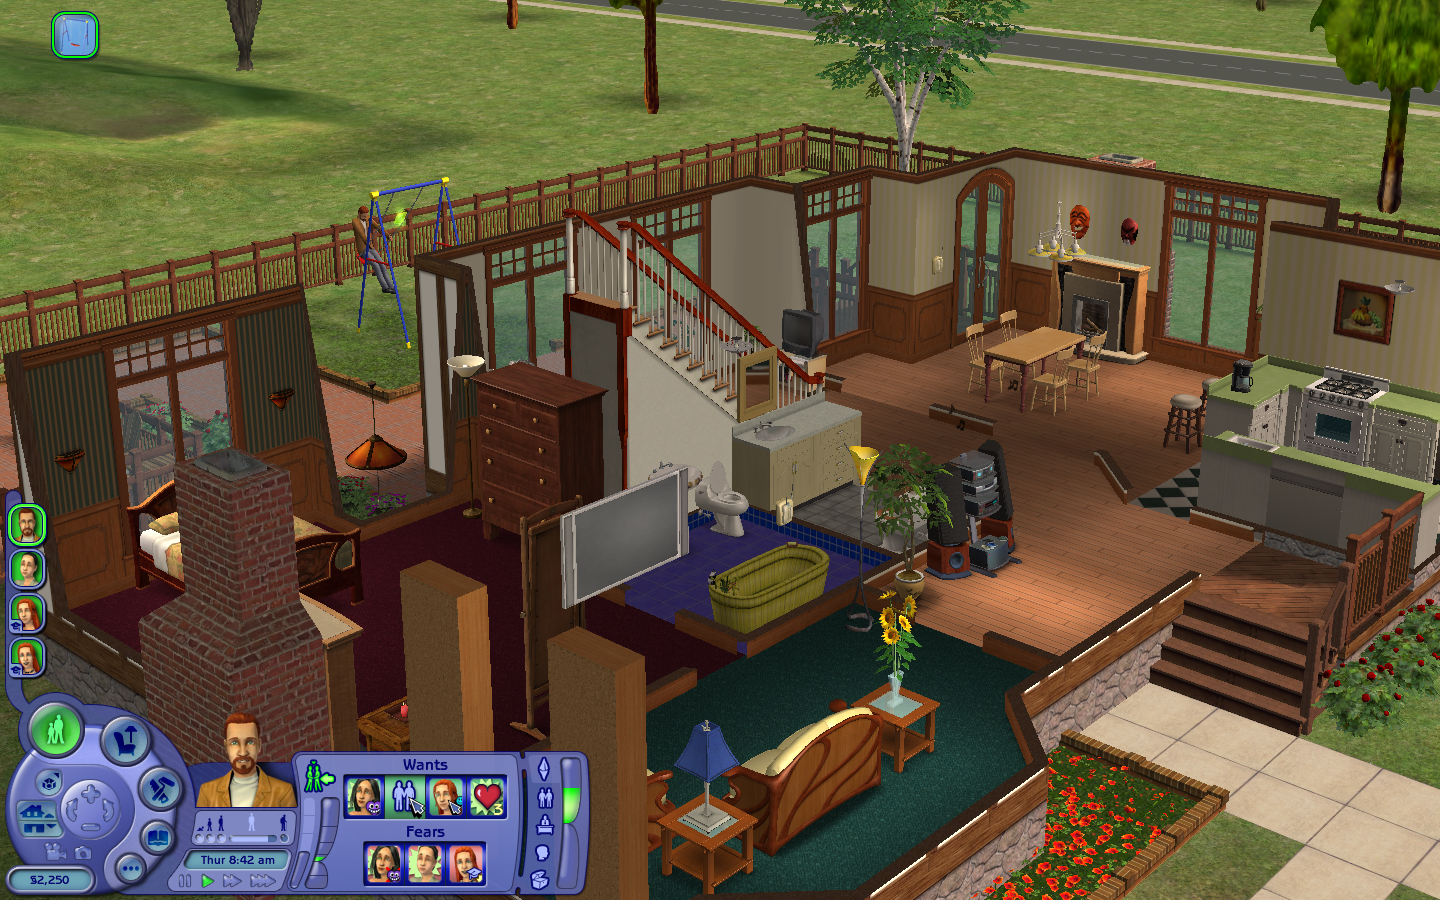 sims 2 download without cd